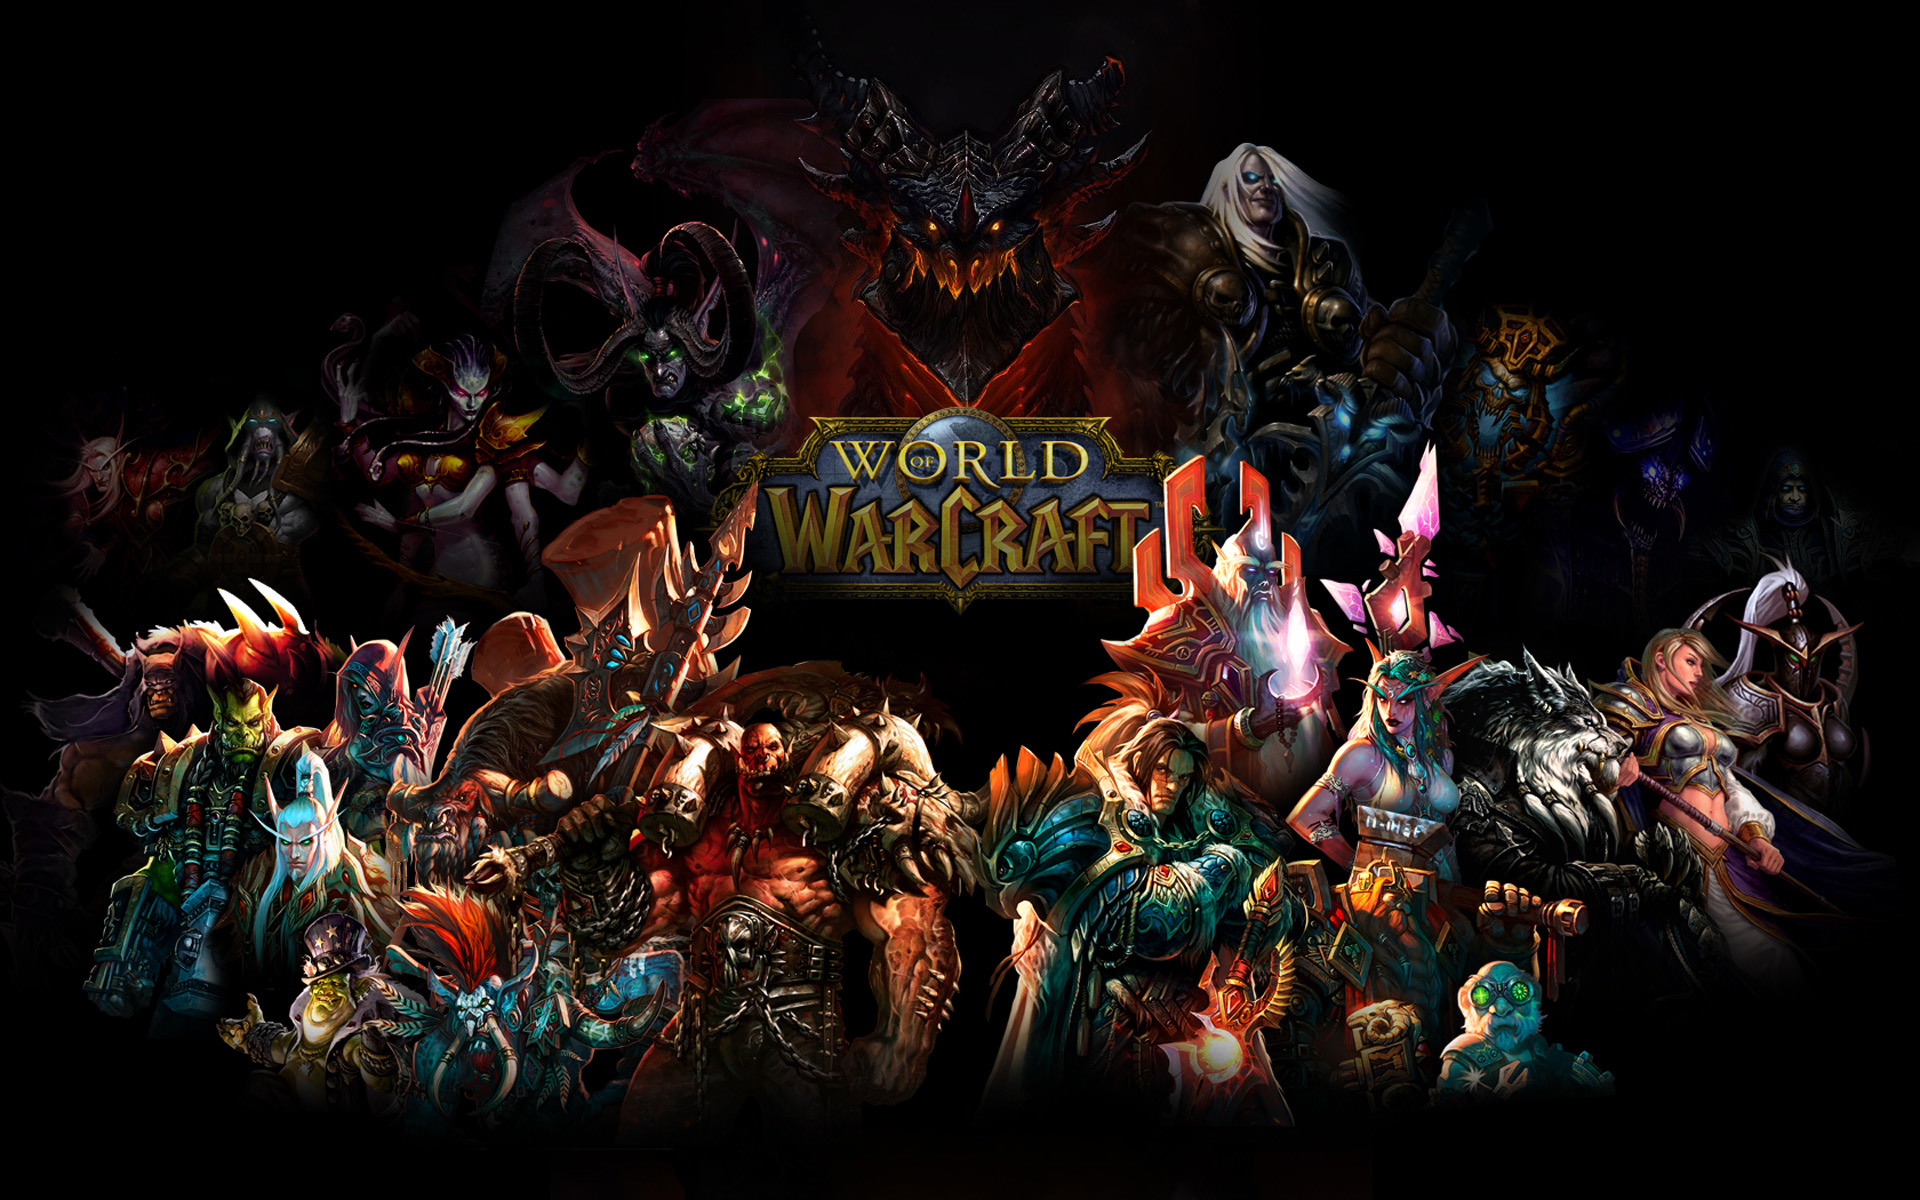 World Of Warcraft HD Wallpaper Background Image